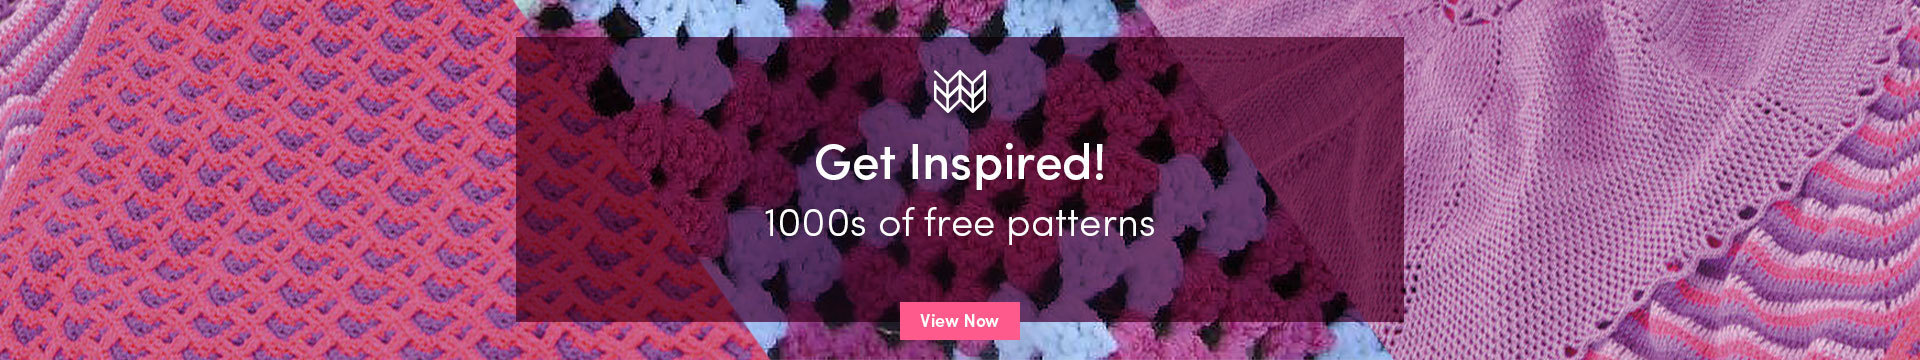 LC Marketing - Free Patterns - Generic